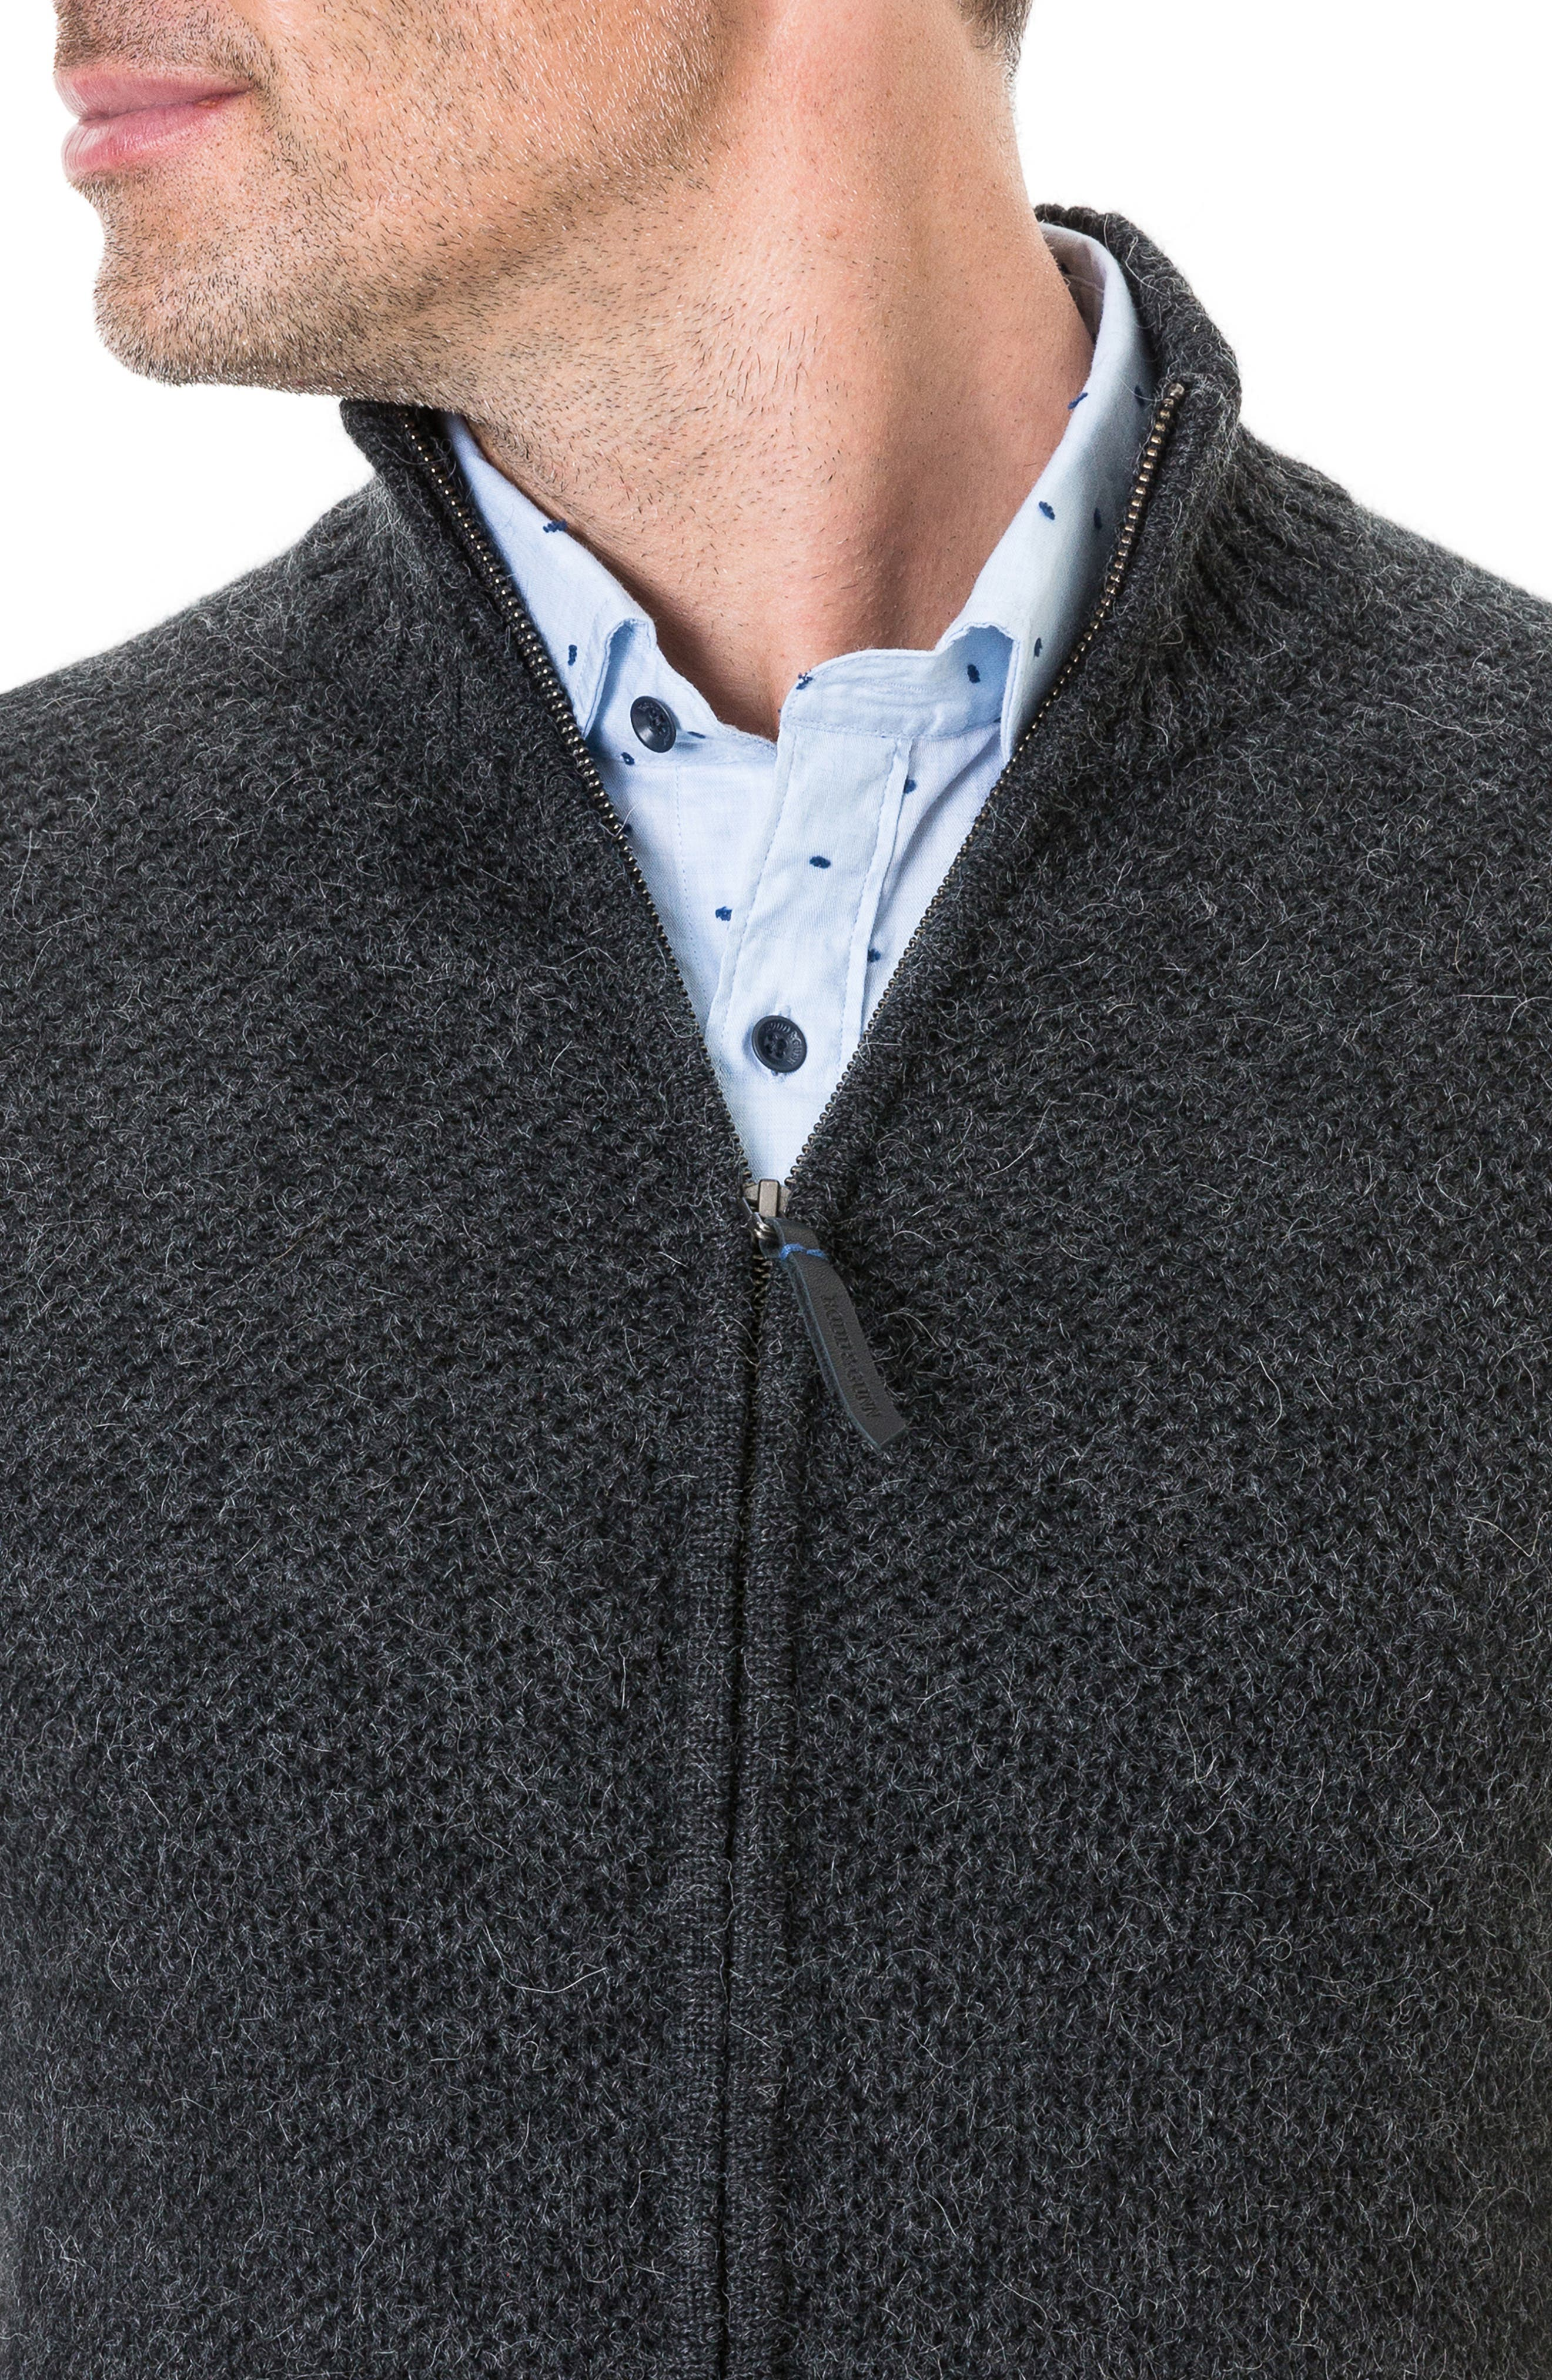 Bendrose Wool Blend Zip Cardigan,                             Alternate thumbnail 3, color,                             CHARCOAL